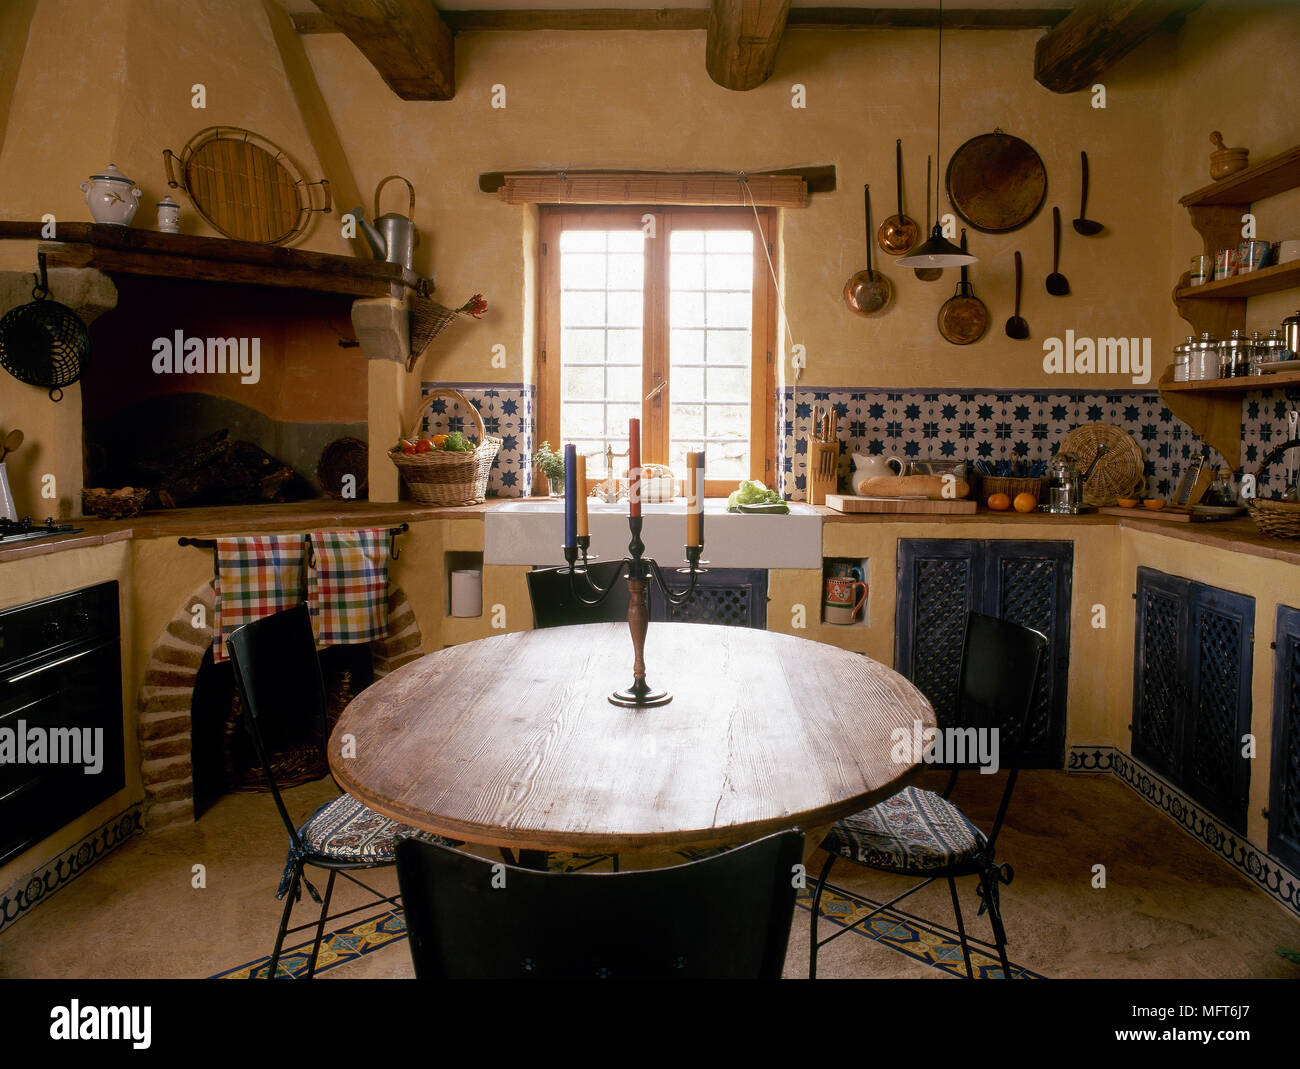 - Rustic, Eat-in Kitchen With Round Table And Chairs, Beamed Ceiling